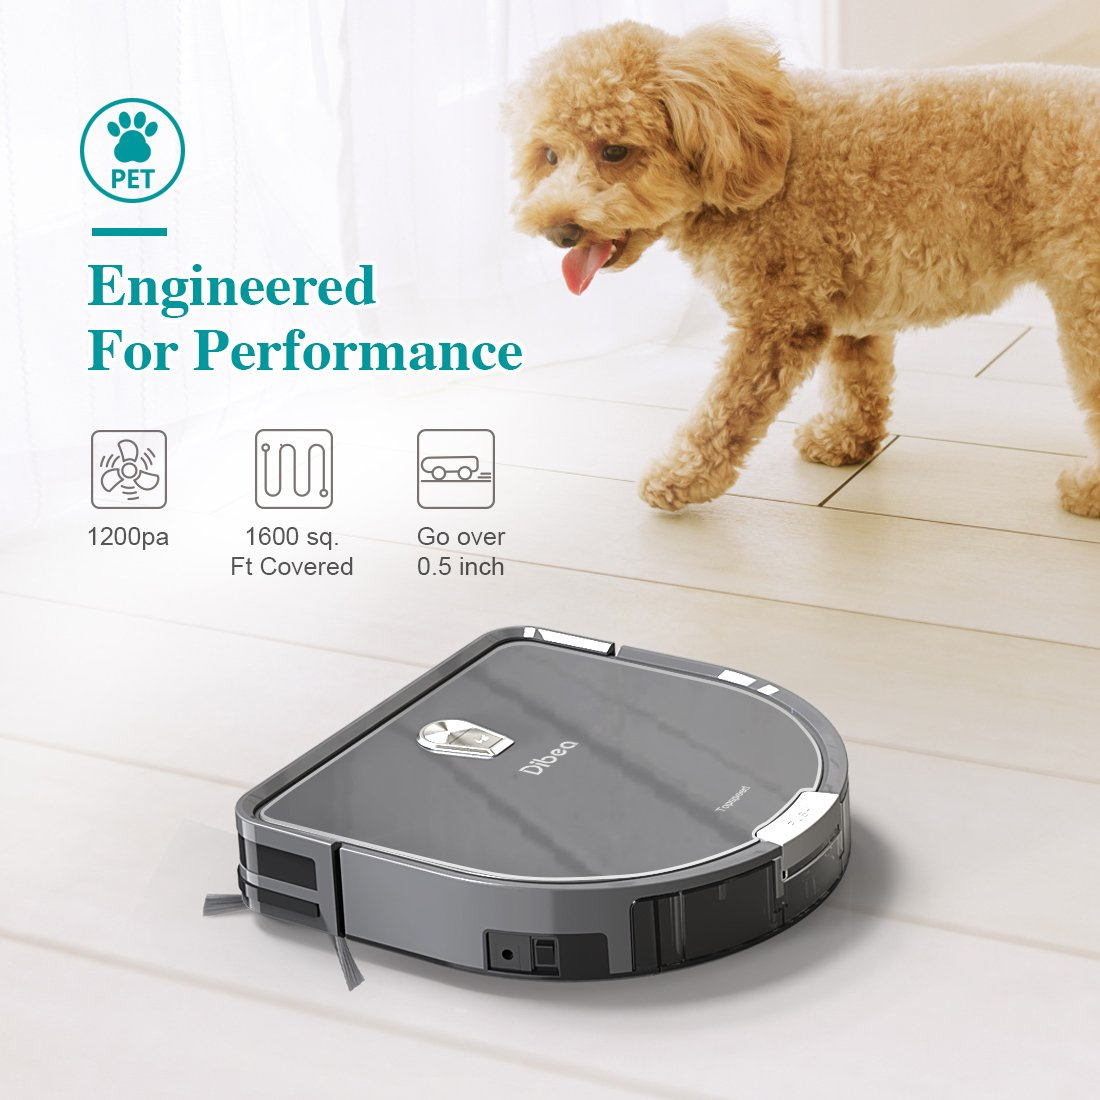 Amazon.com: Dibea Robot Vacuum Cleaner Mopping Water Tank, 1200pa High Suction, Self-Charging Drop-Sensing Robotic Vacuum Pet Hair Hard Floor DT966: Home & ...